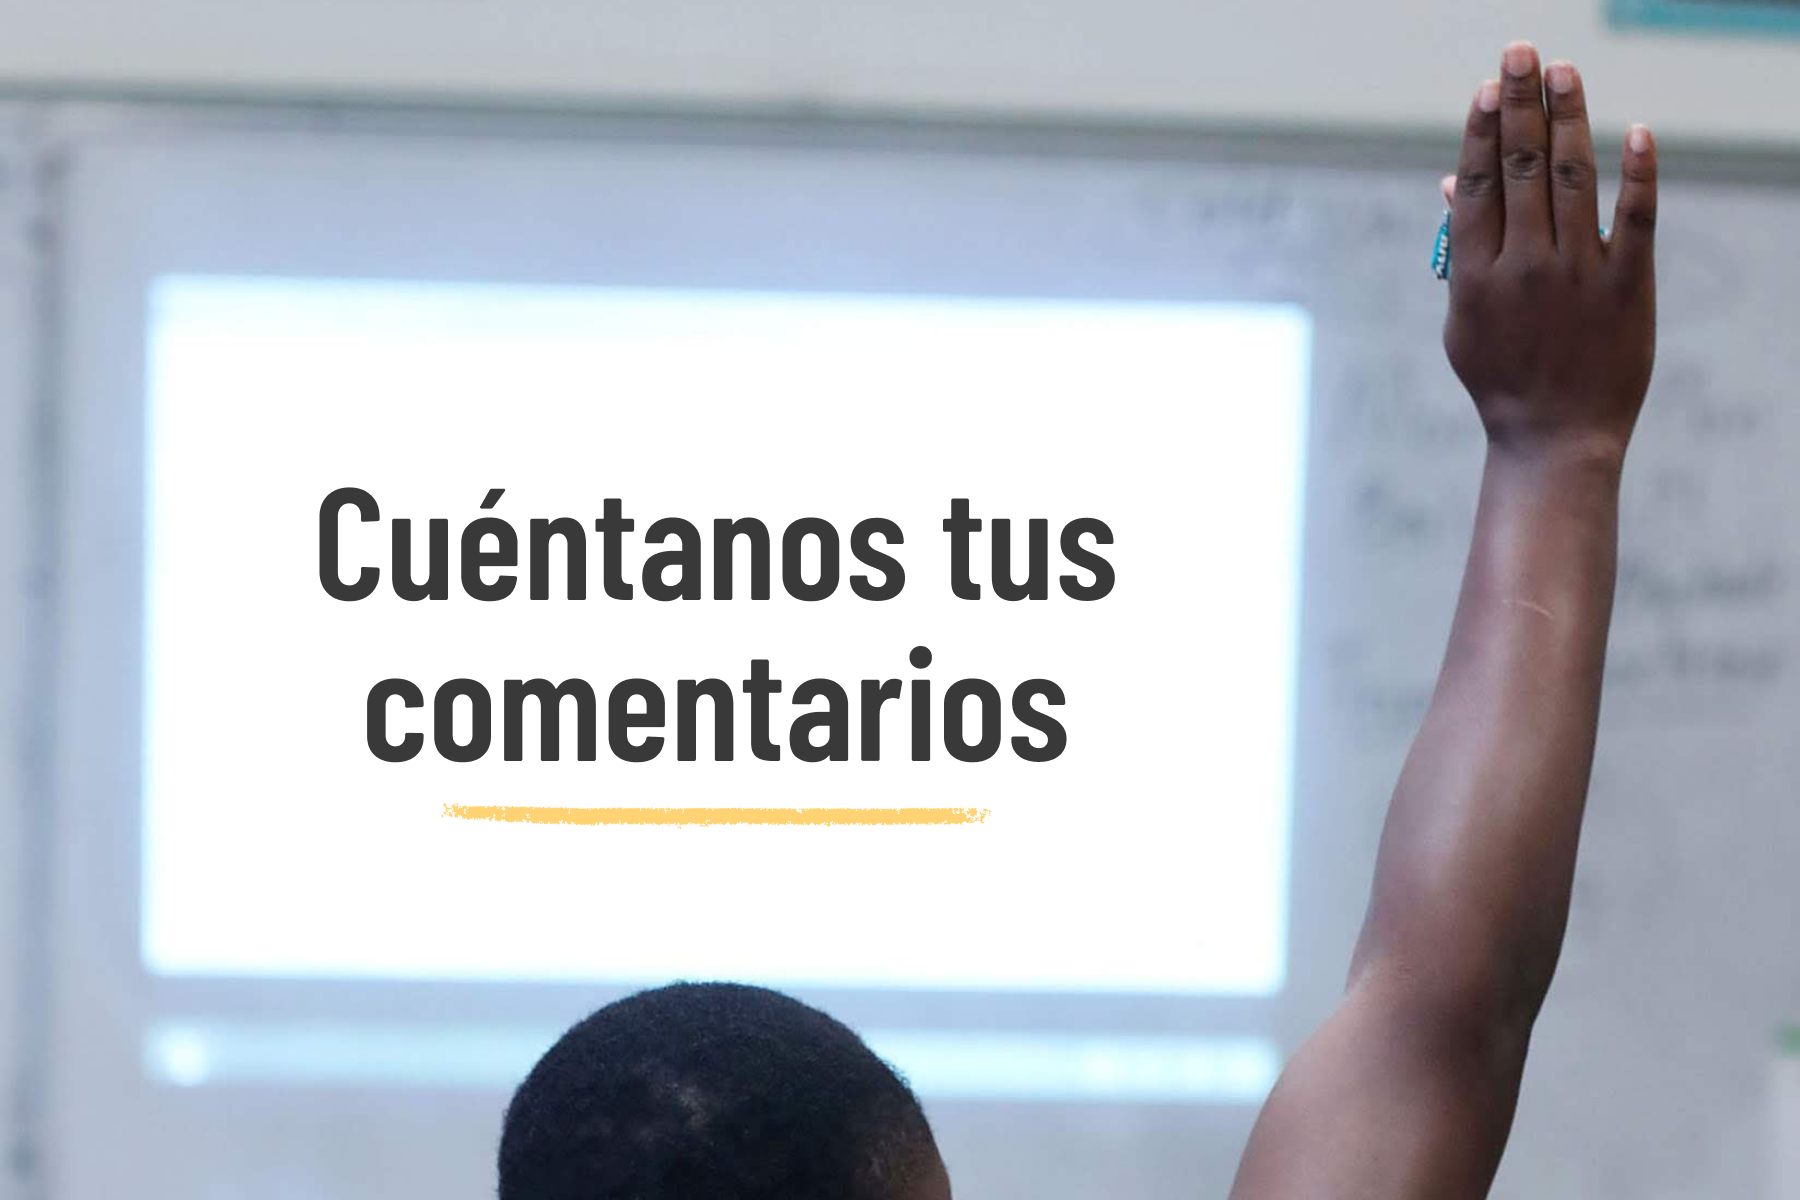 A student raises his hand during class. Text overlay on the image reads: Cuéntanos tus comentarios.